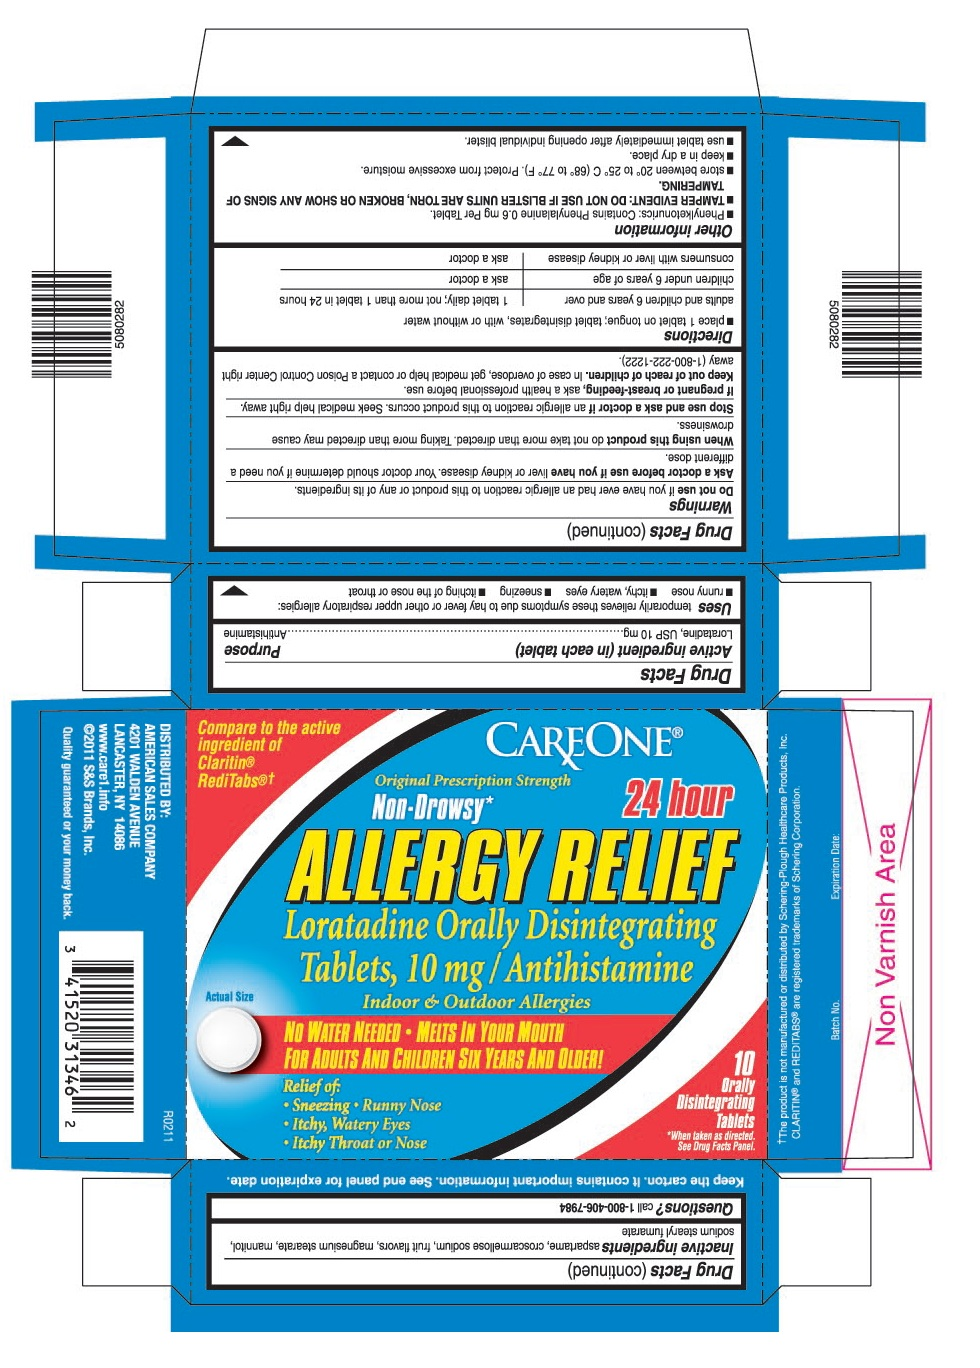 This is the 10 count blister carton label for Careone Loratadine ODT, 10 mg.